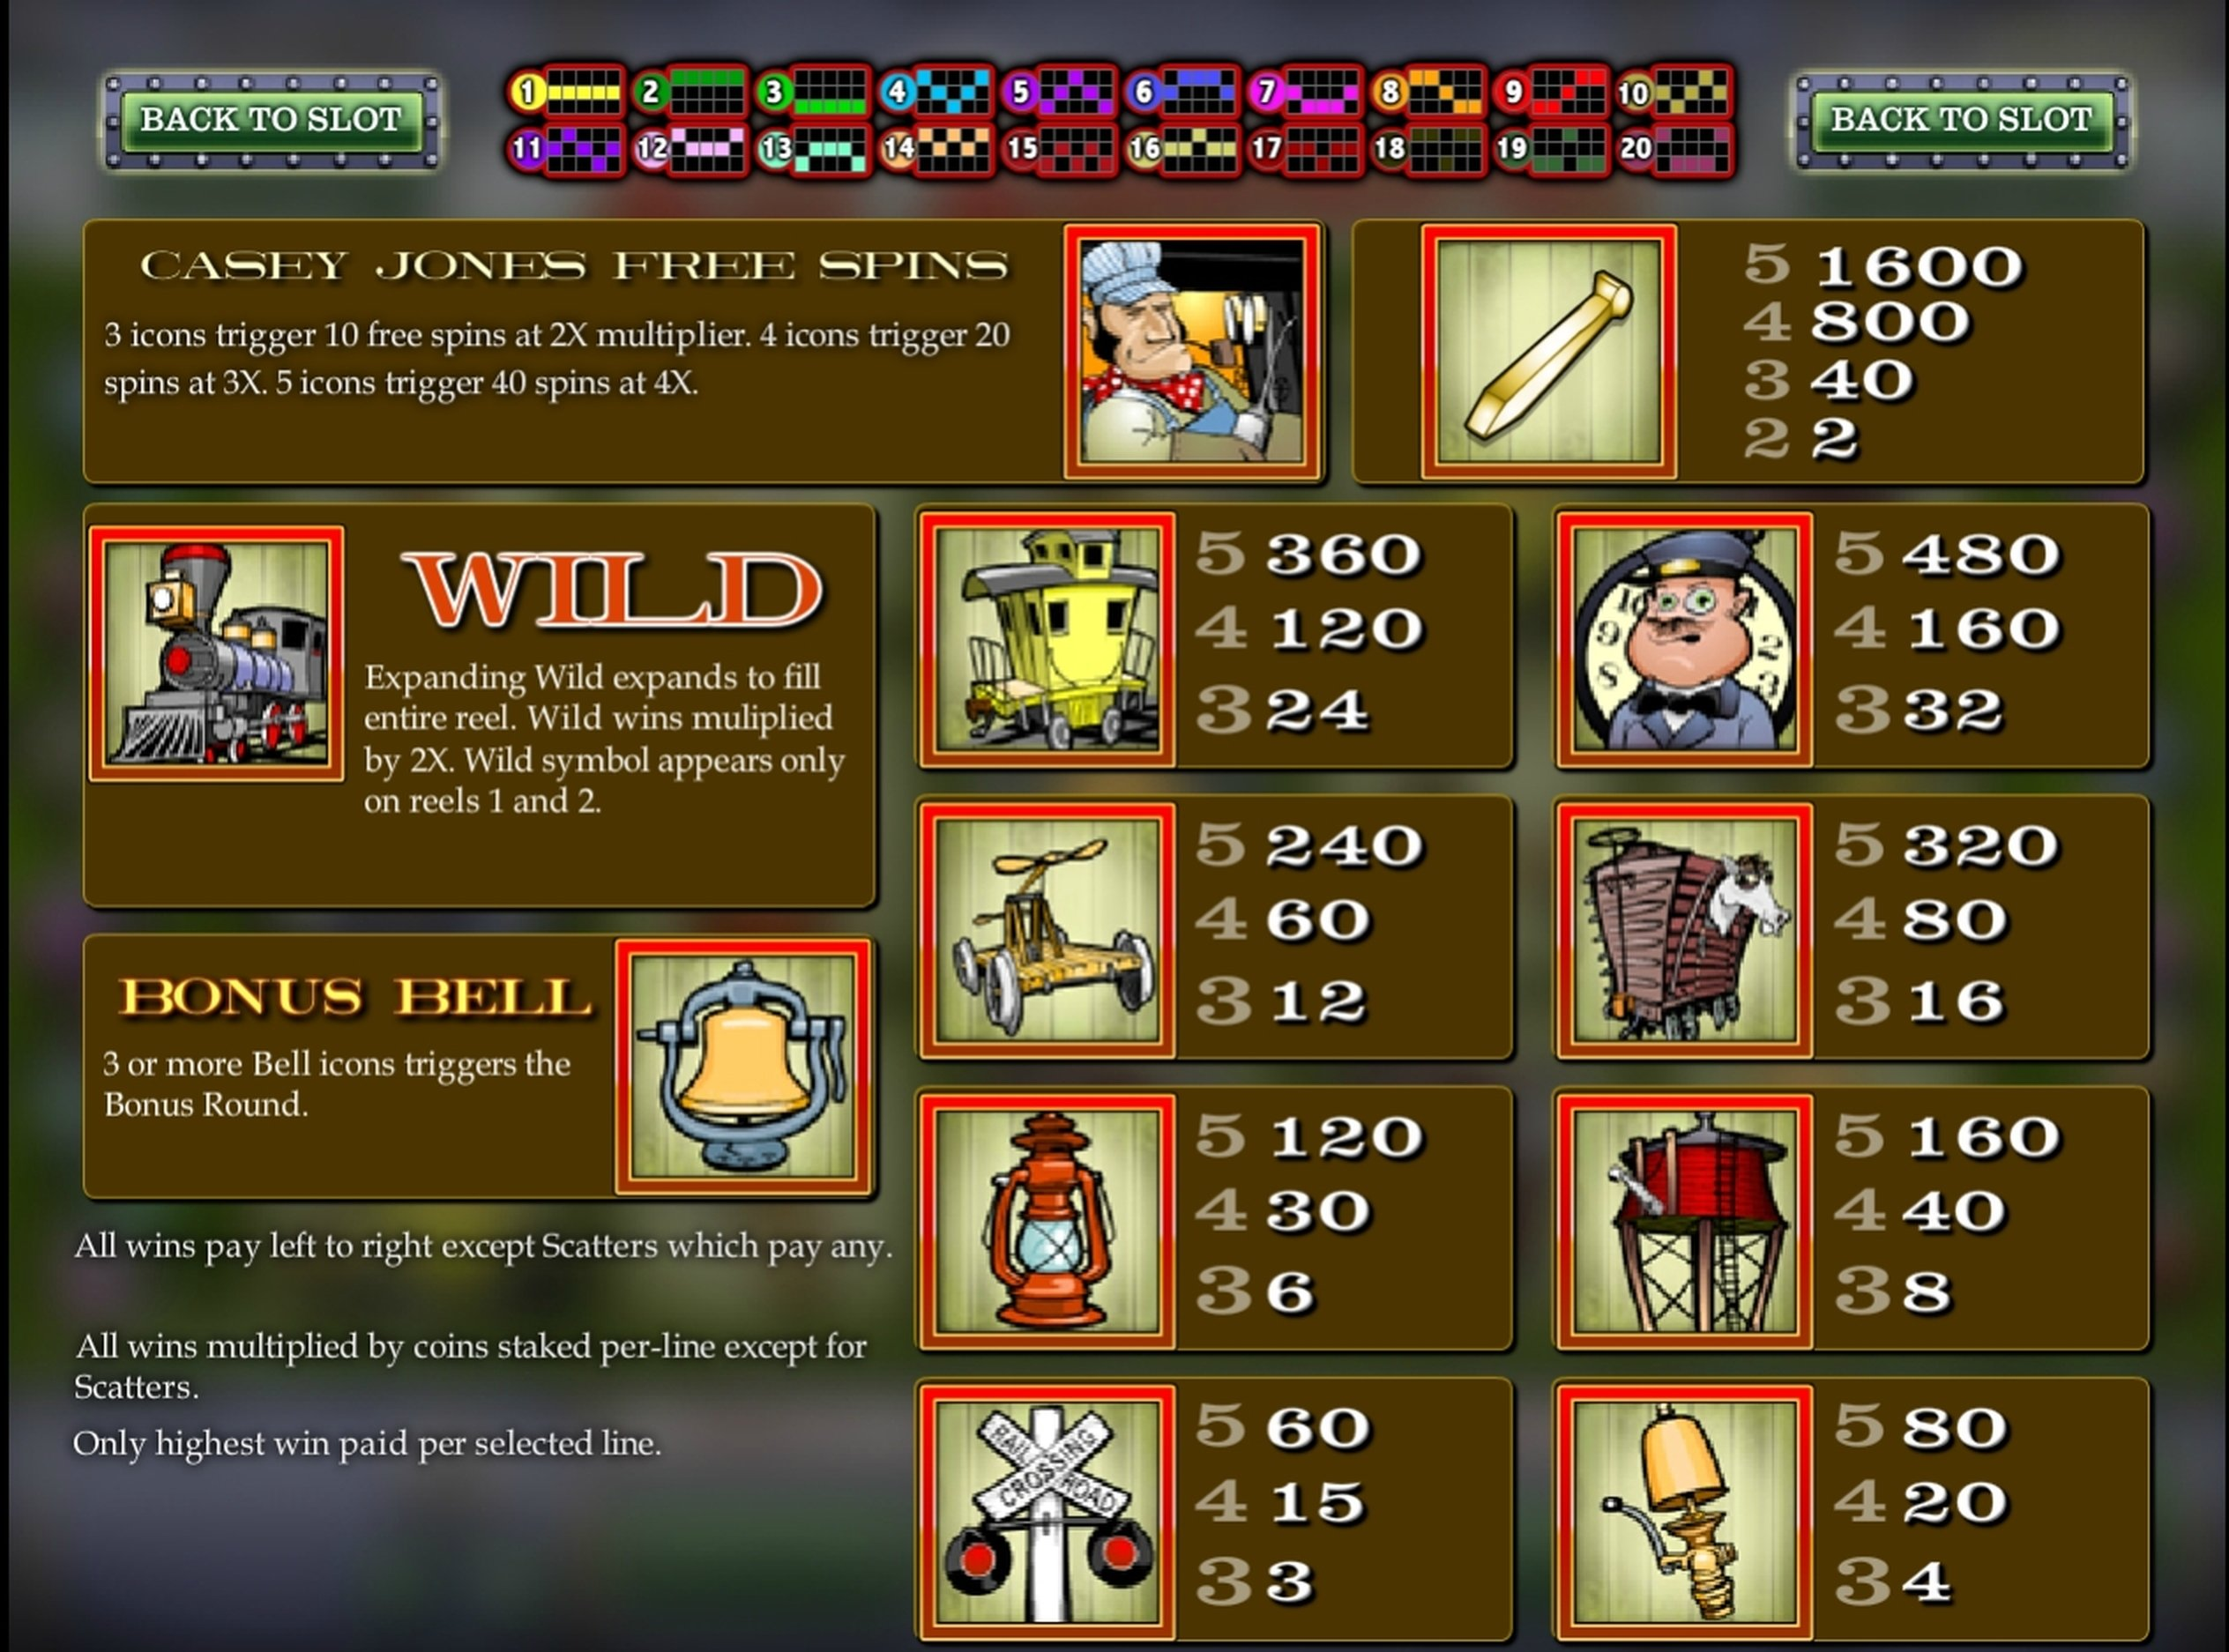 Play All Aboard Slot Machine Free With No Download